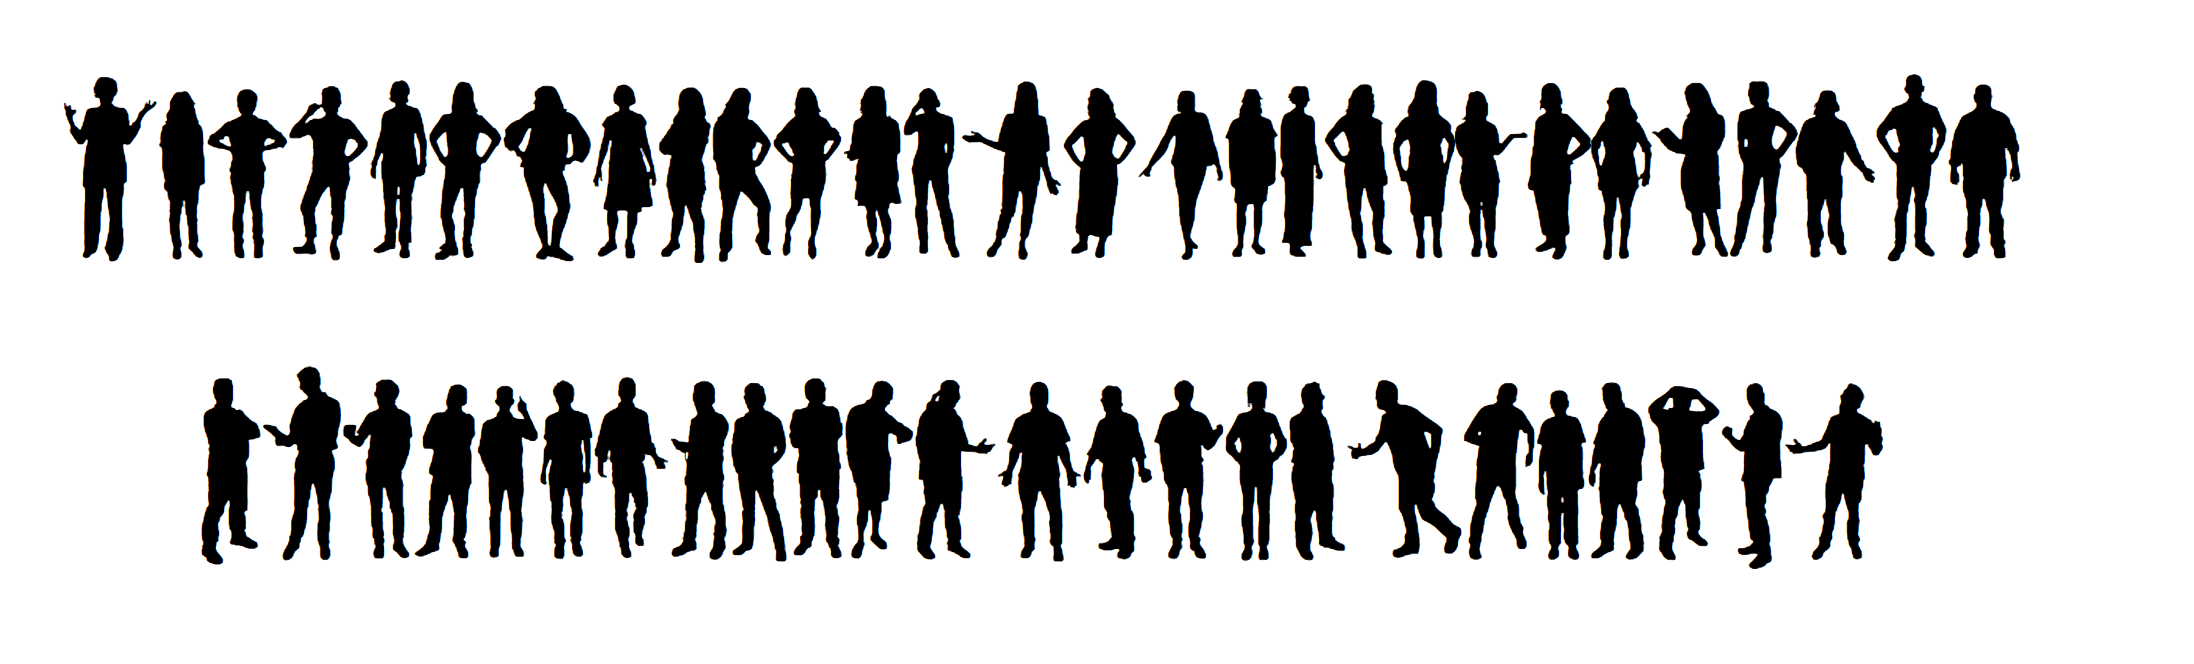 selection of silhouettes of people